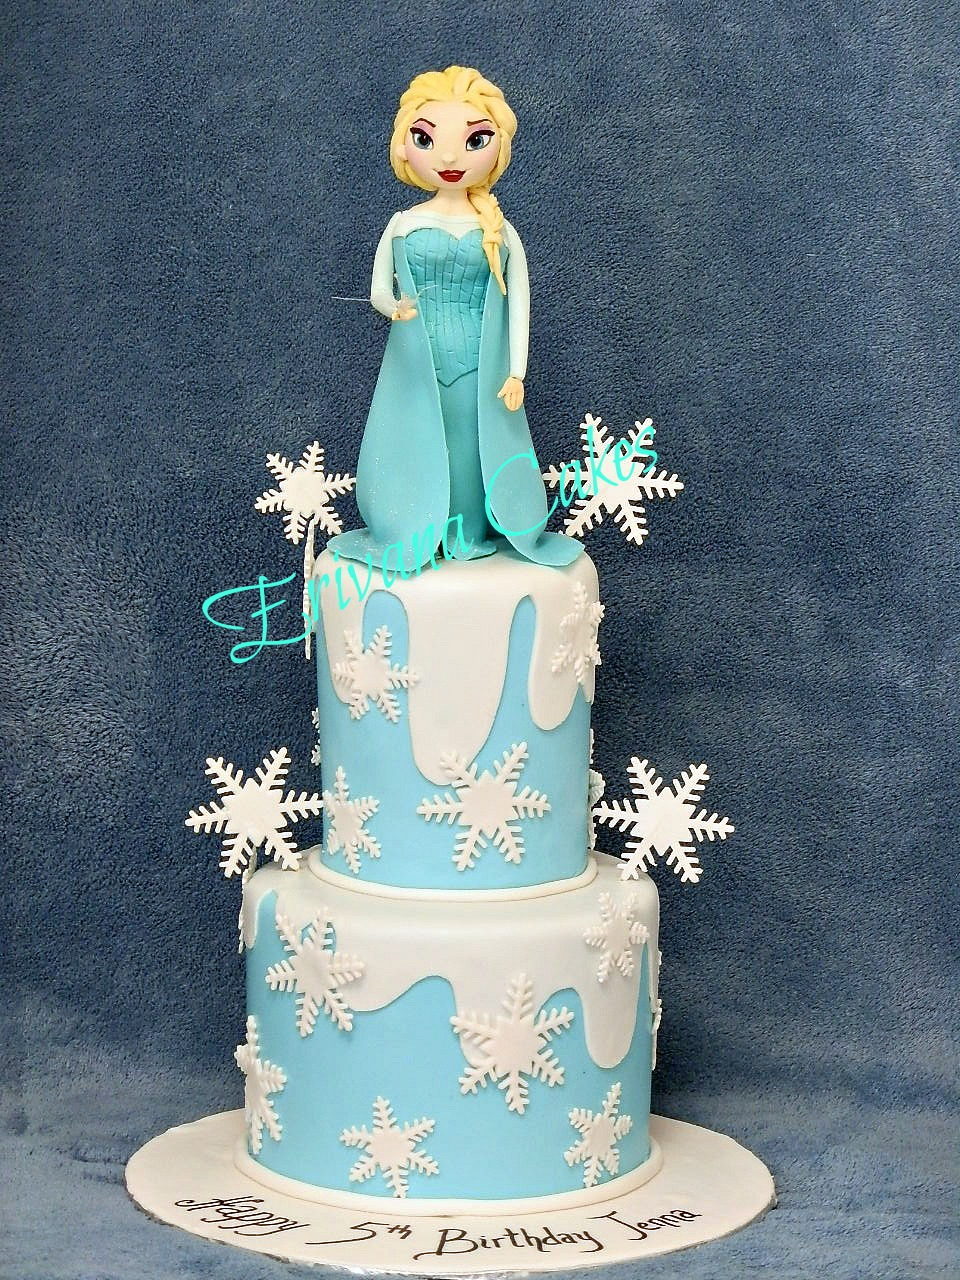 Frozen themed cake 2